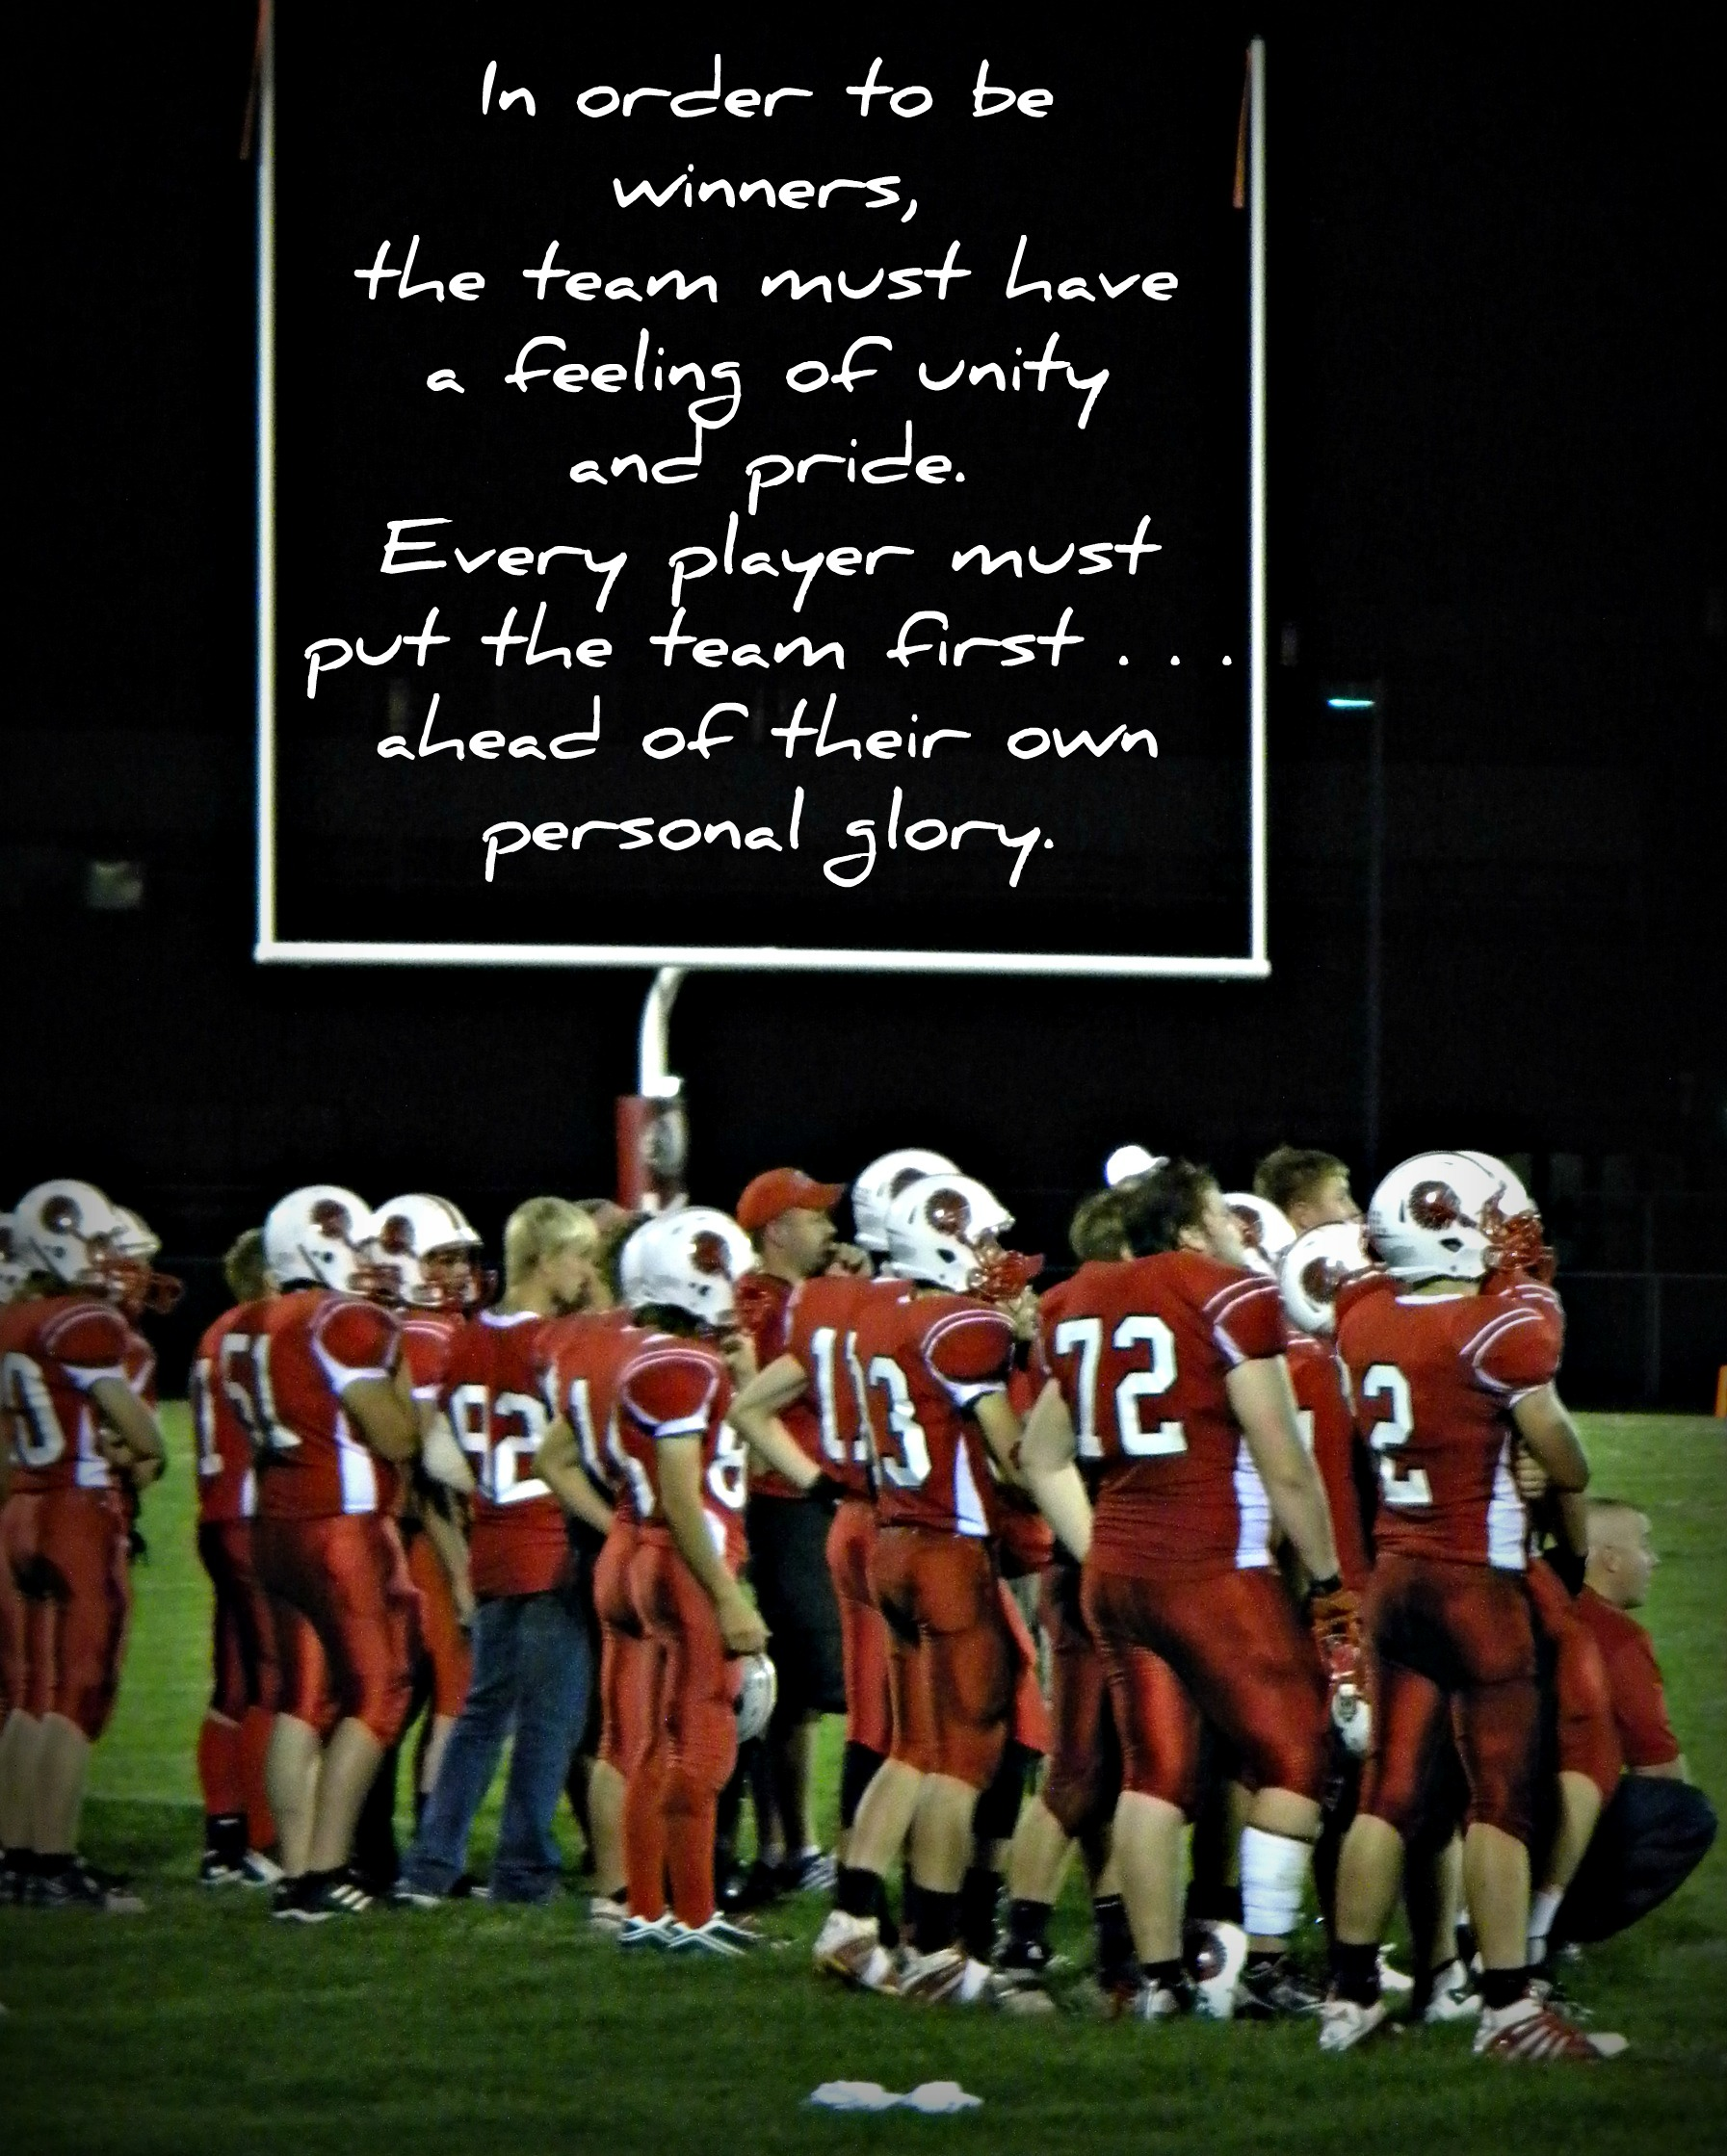 Encouraging Quotes For Sports Teams: Inspirational Quotes For Sports Teams. QuotesGram